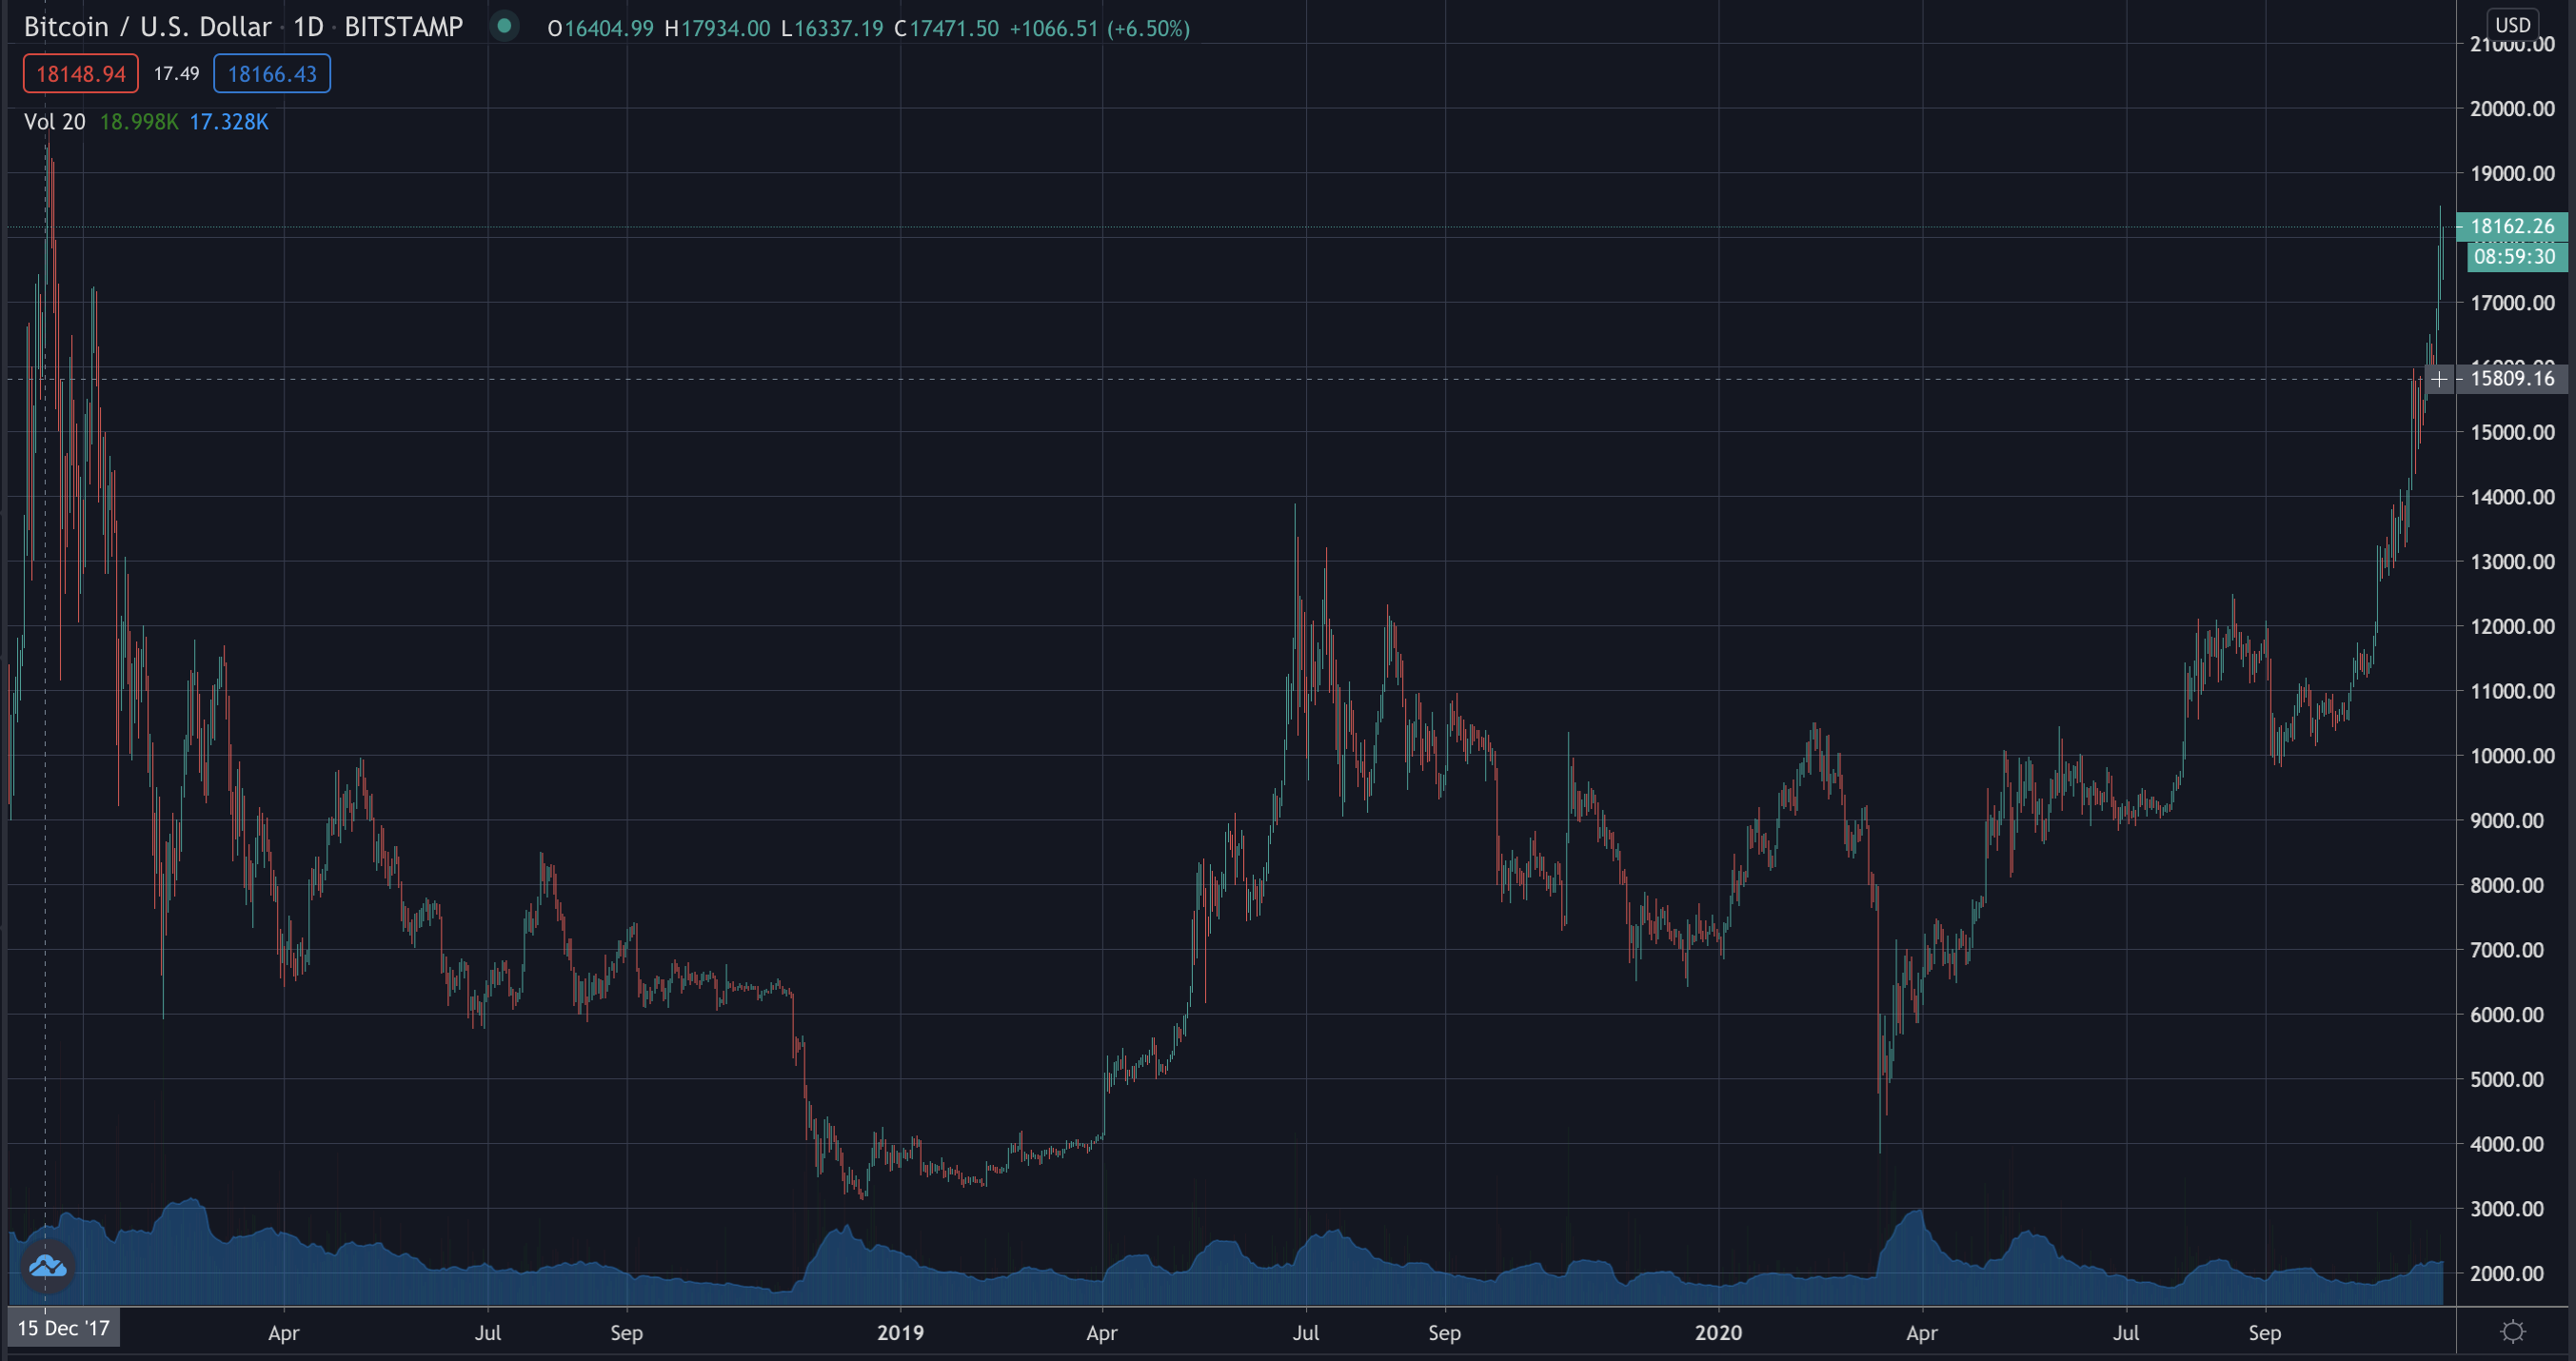 Bitcoin's price for the past three years, Nov 2020